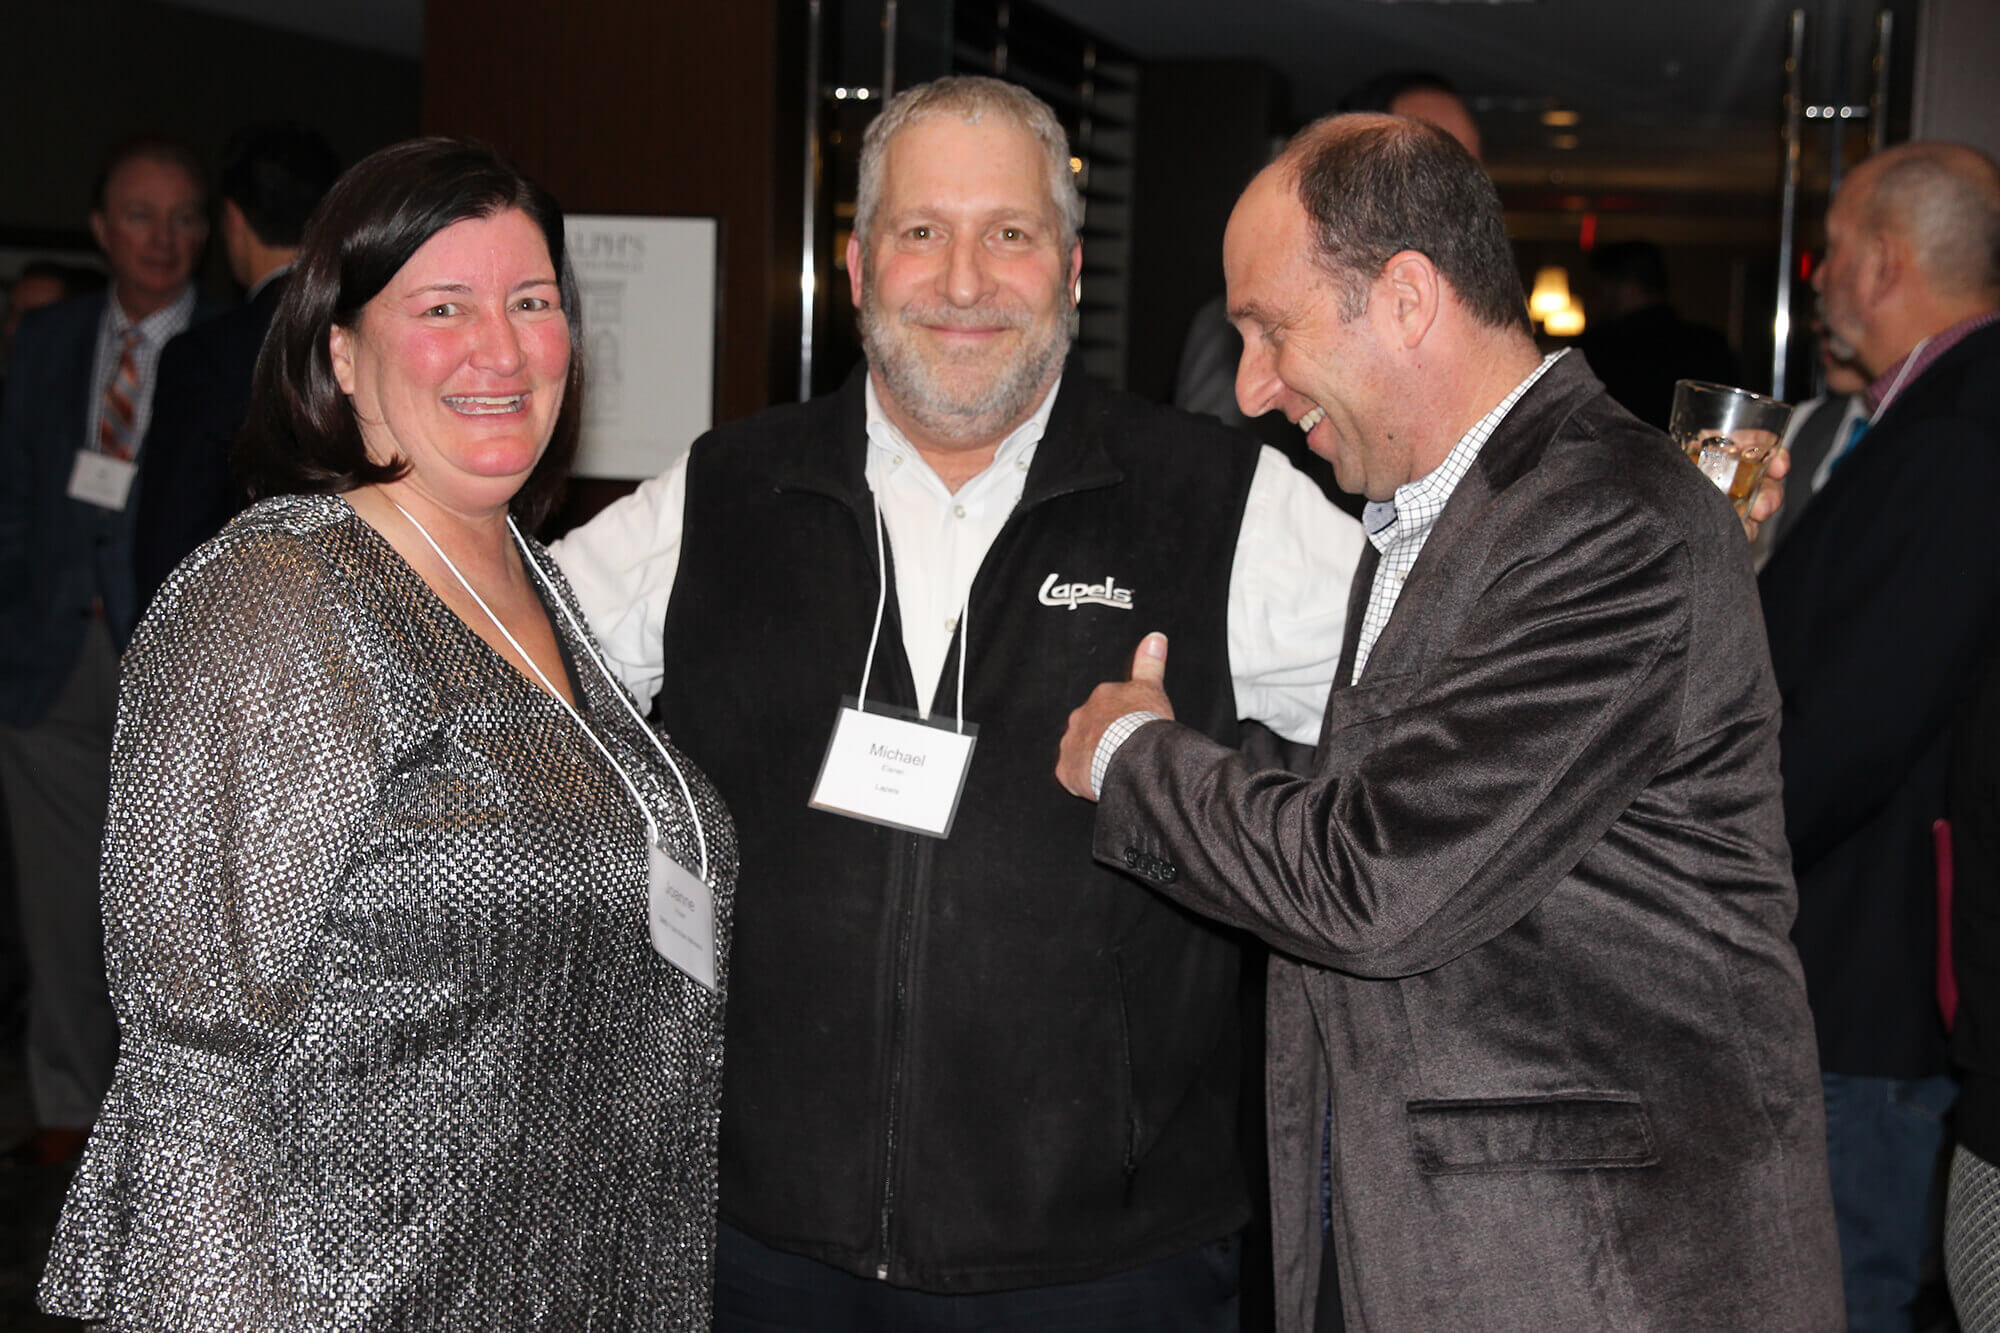 SMB Franchise Advisors Director of Franchise Development Joanne Hoyer and President and CEO Steve Beagelman laughing with a client from Lapels franchise.